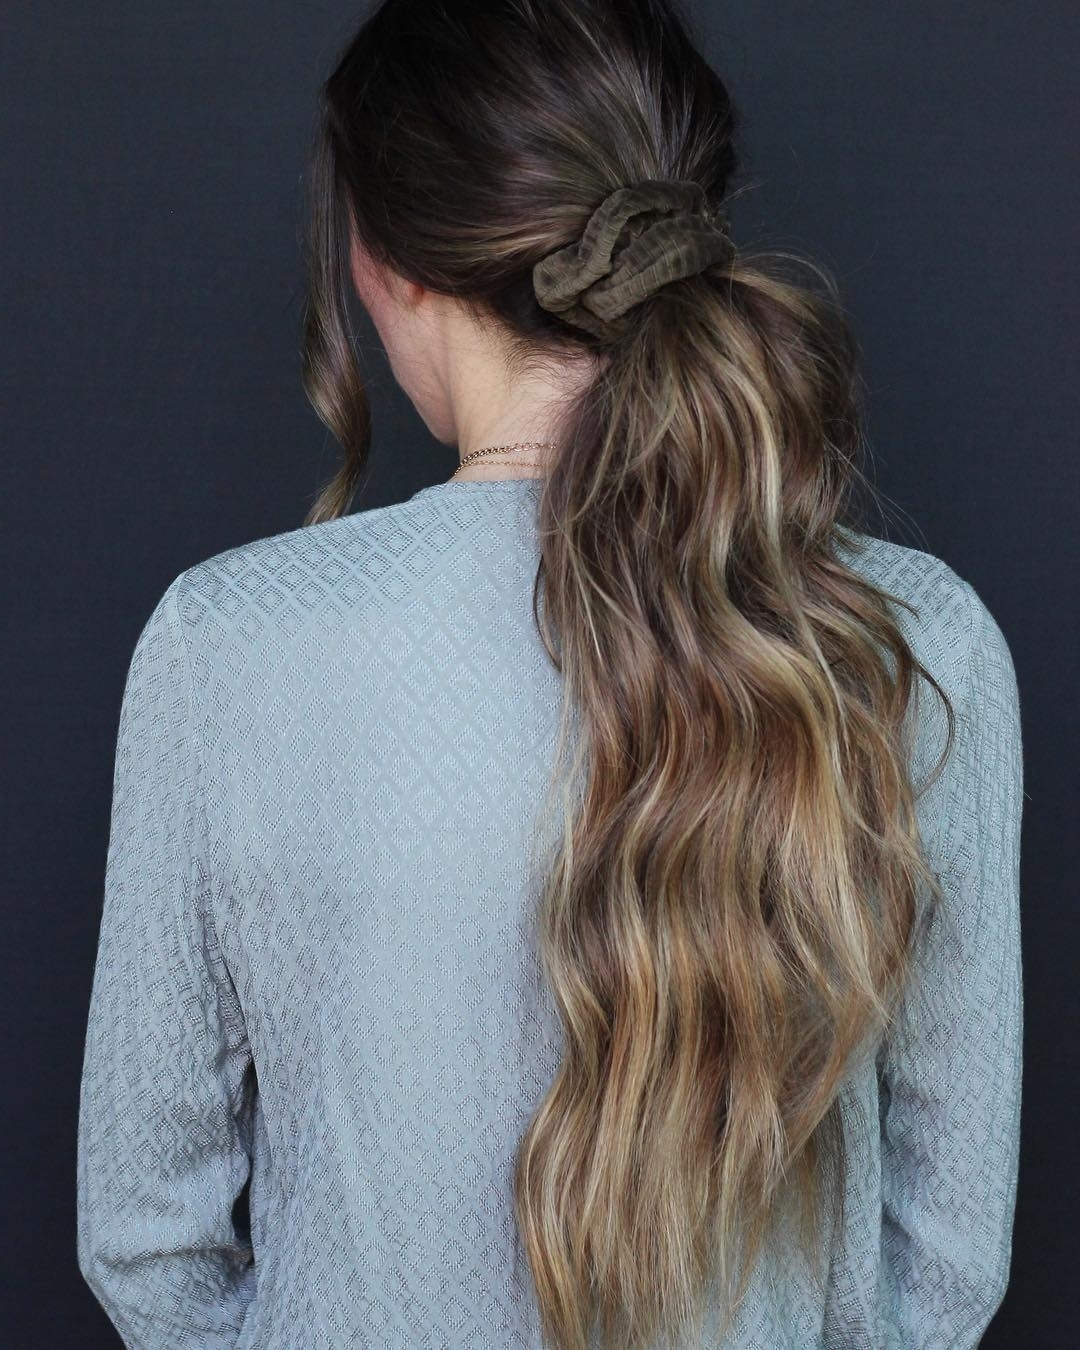 Bigponytail – Hash Tags – Deskgram Throughout Most Current Stylish Supersized Ponytail Hairstyles (View 4 of 20)